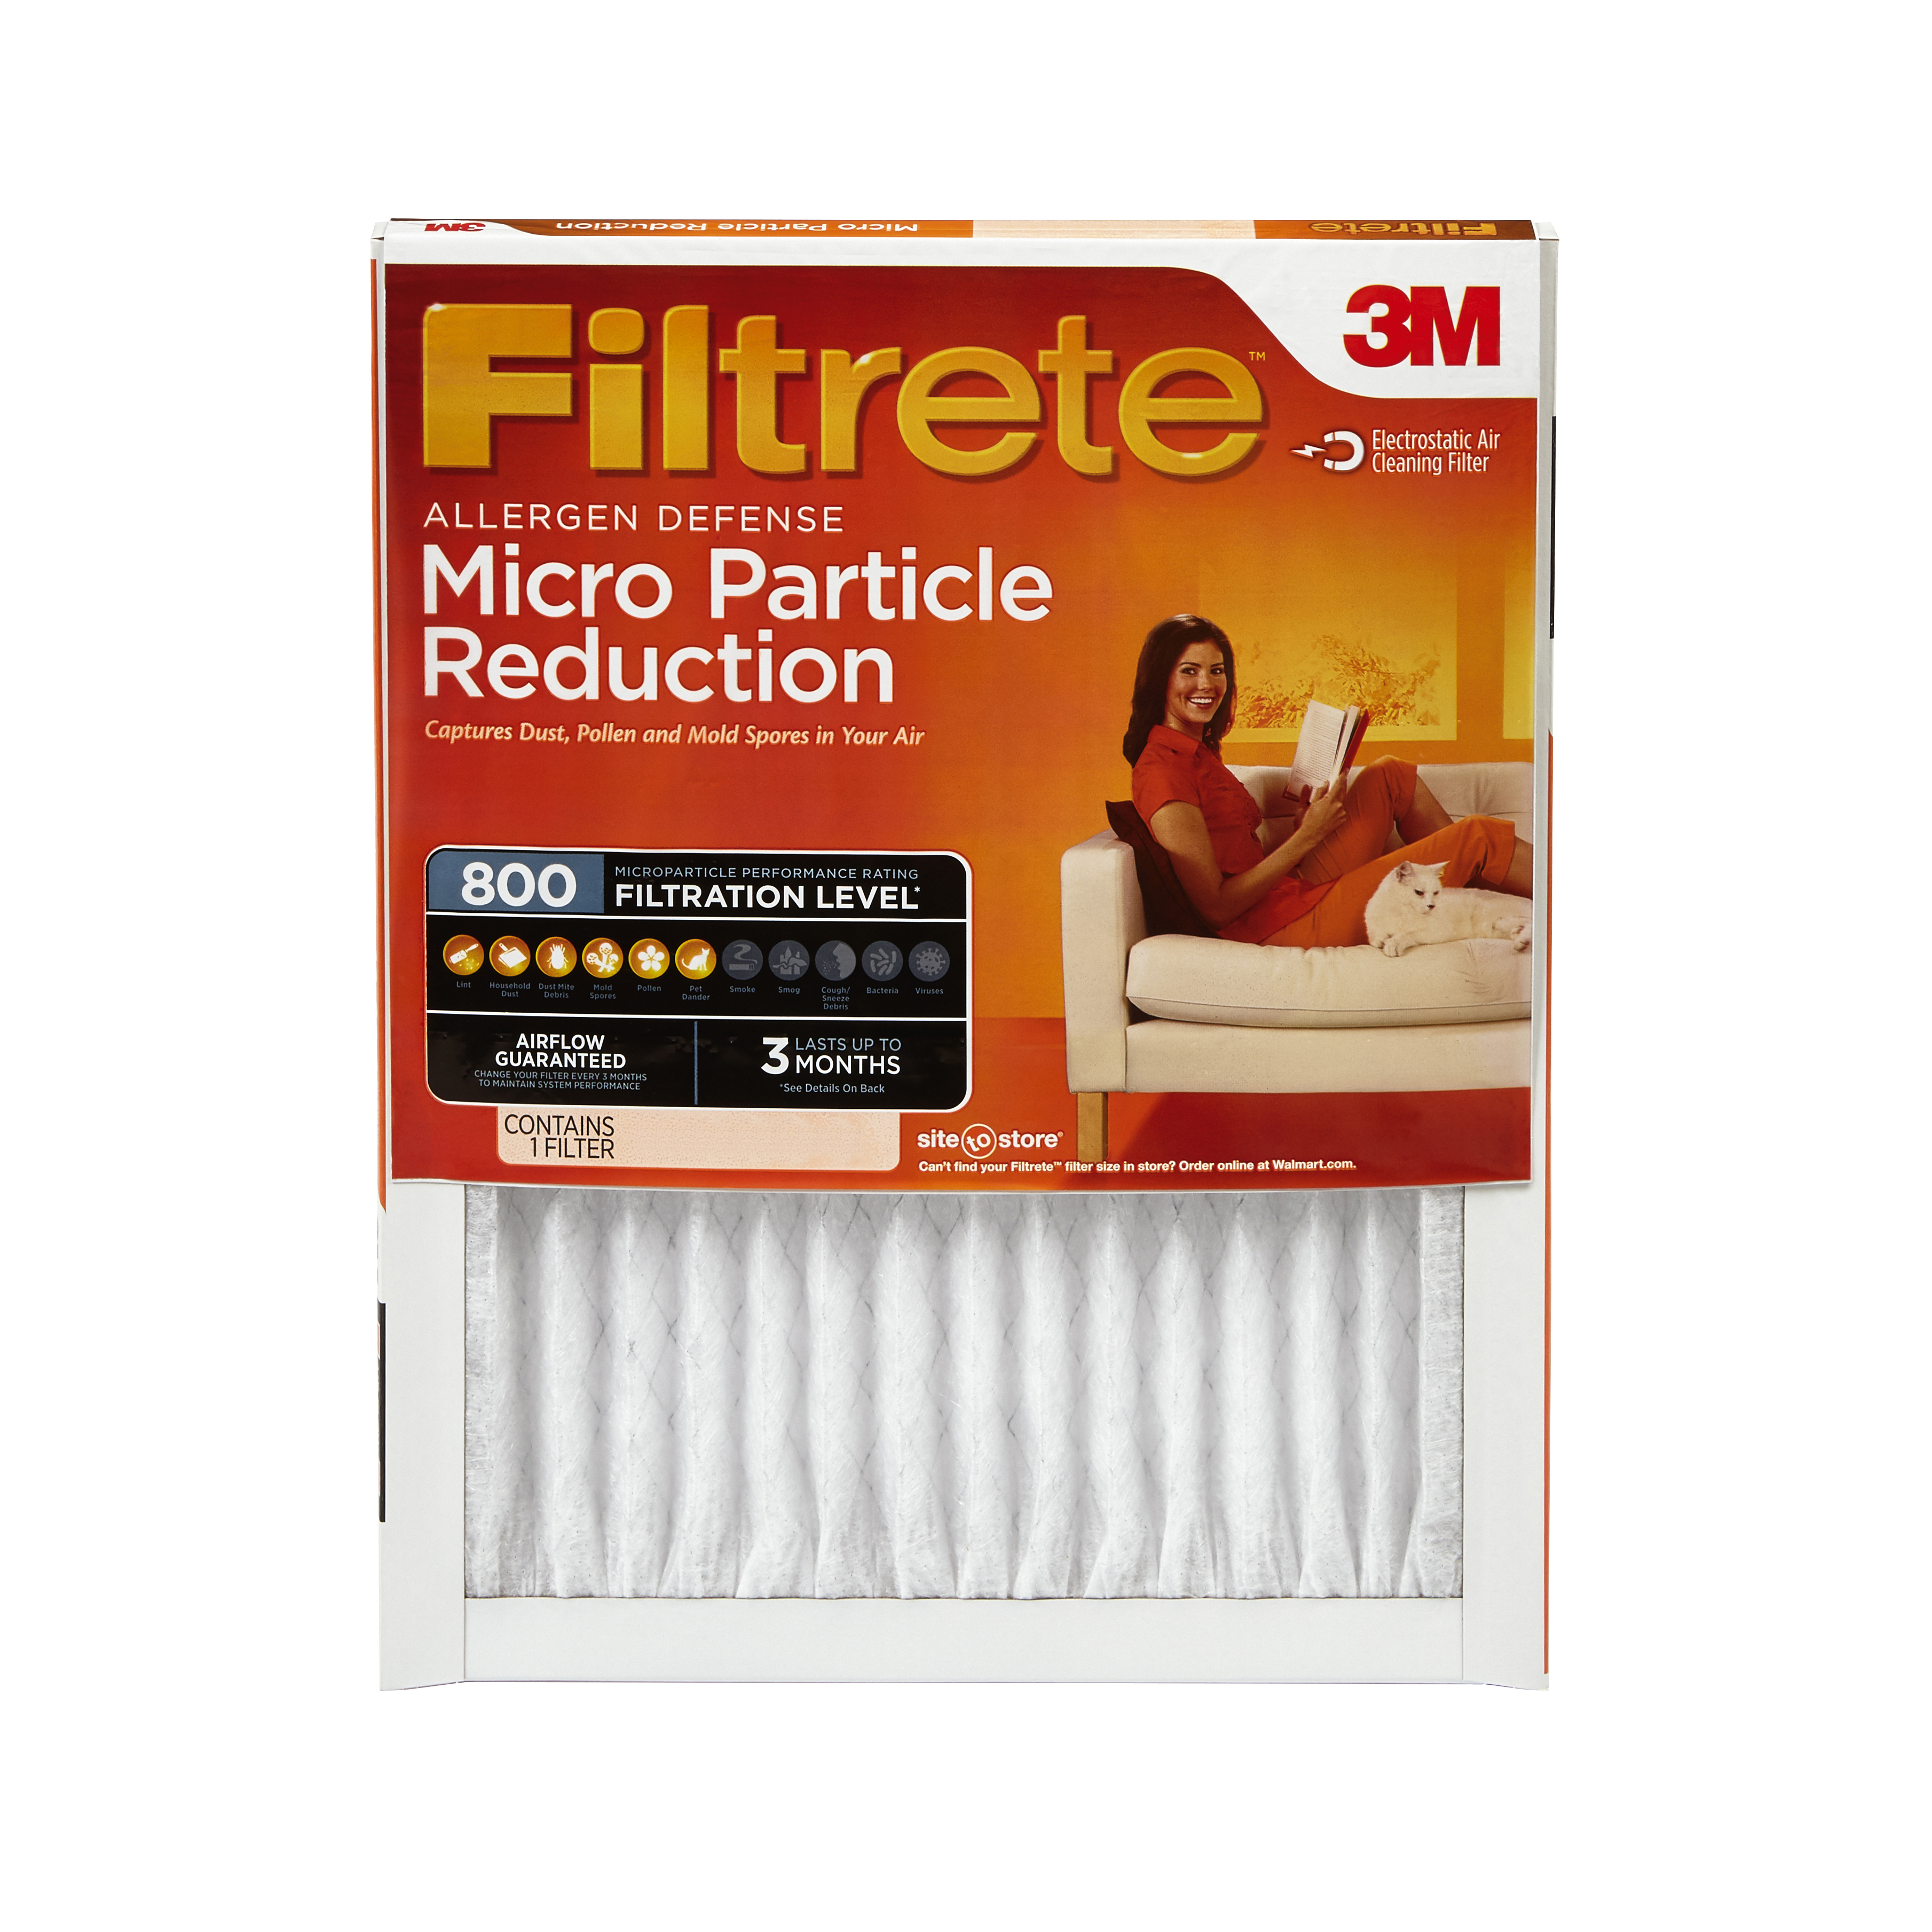 Filtrete Allergen Defense Micro Particle Reduction HVAC Furnace Air Filter, 800 MPR, 16 x 24 x 1 inch, 1 Filter